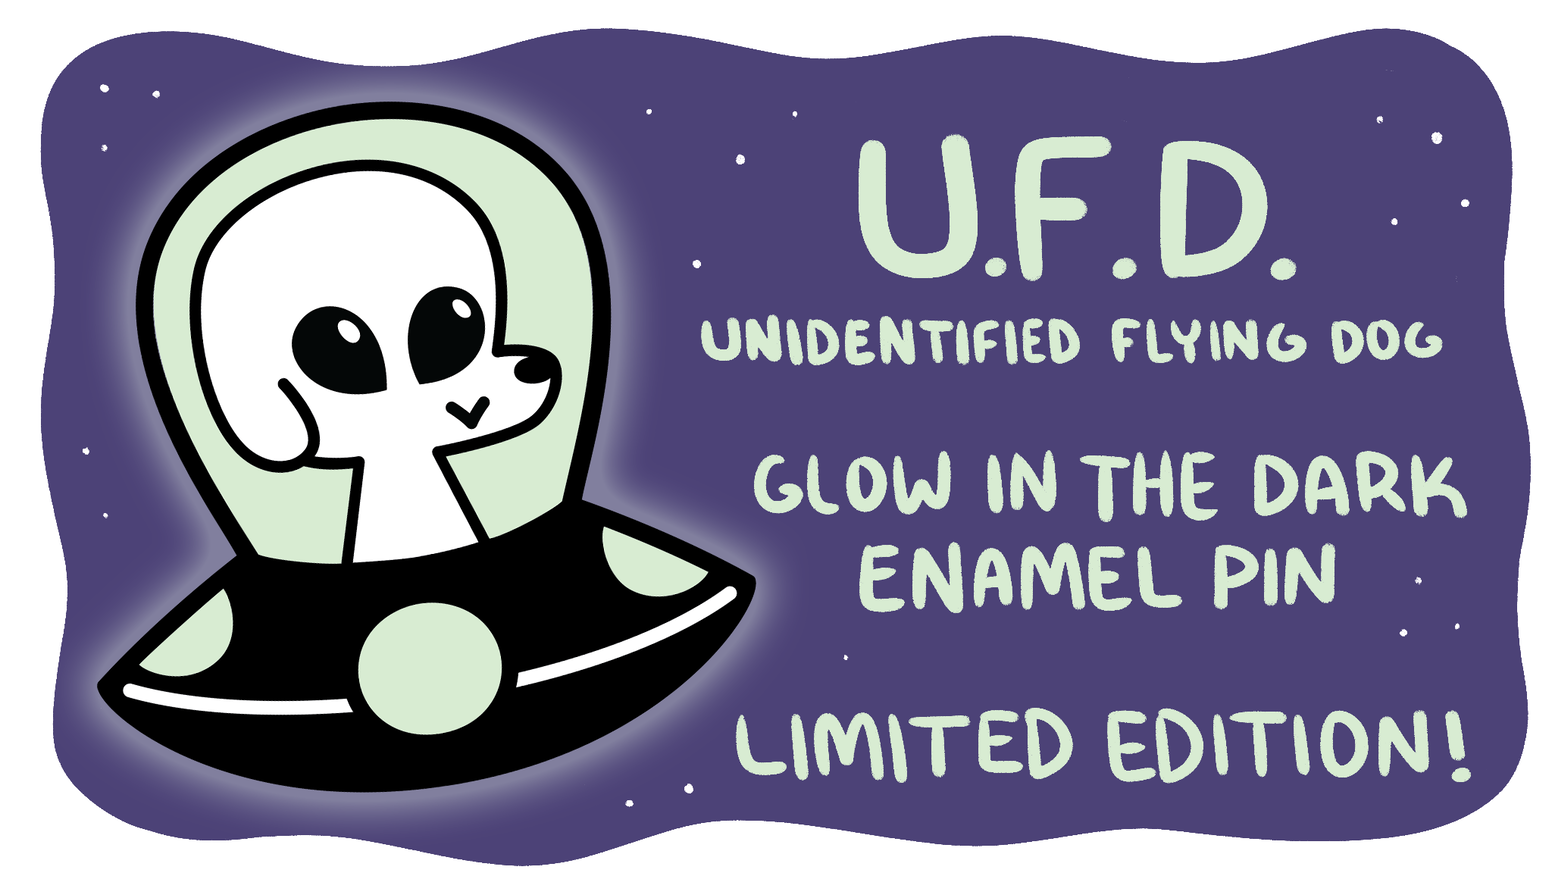 The UFD is a rare sight indeed! Get one of these limited edition, glowing pins to add an eerie touch to your collection.